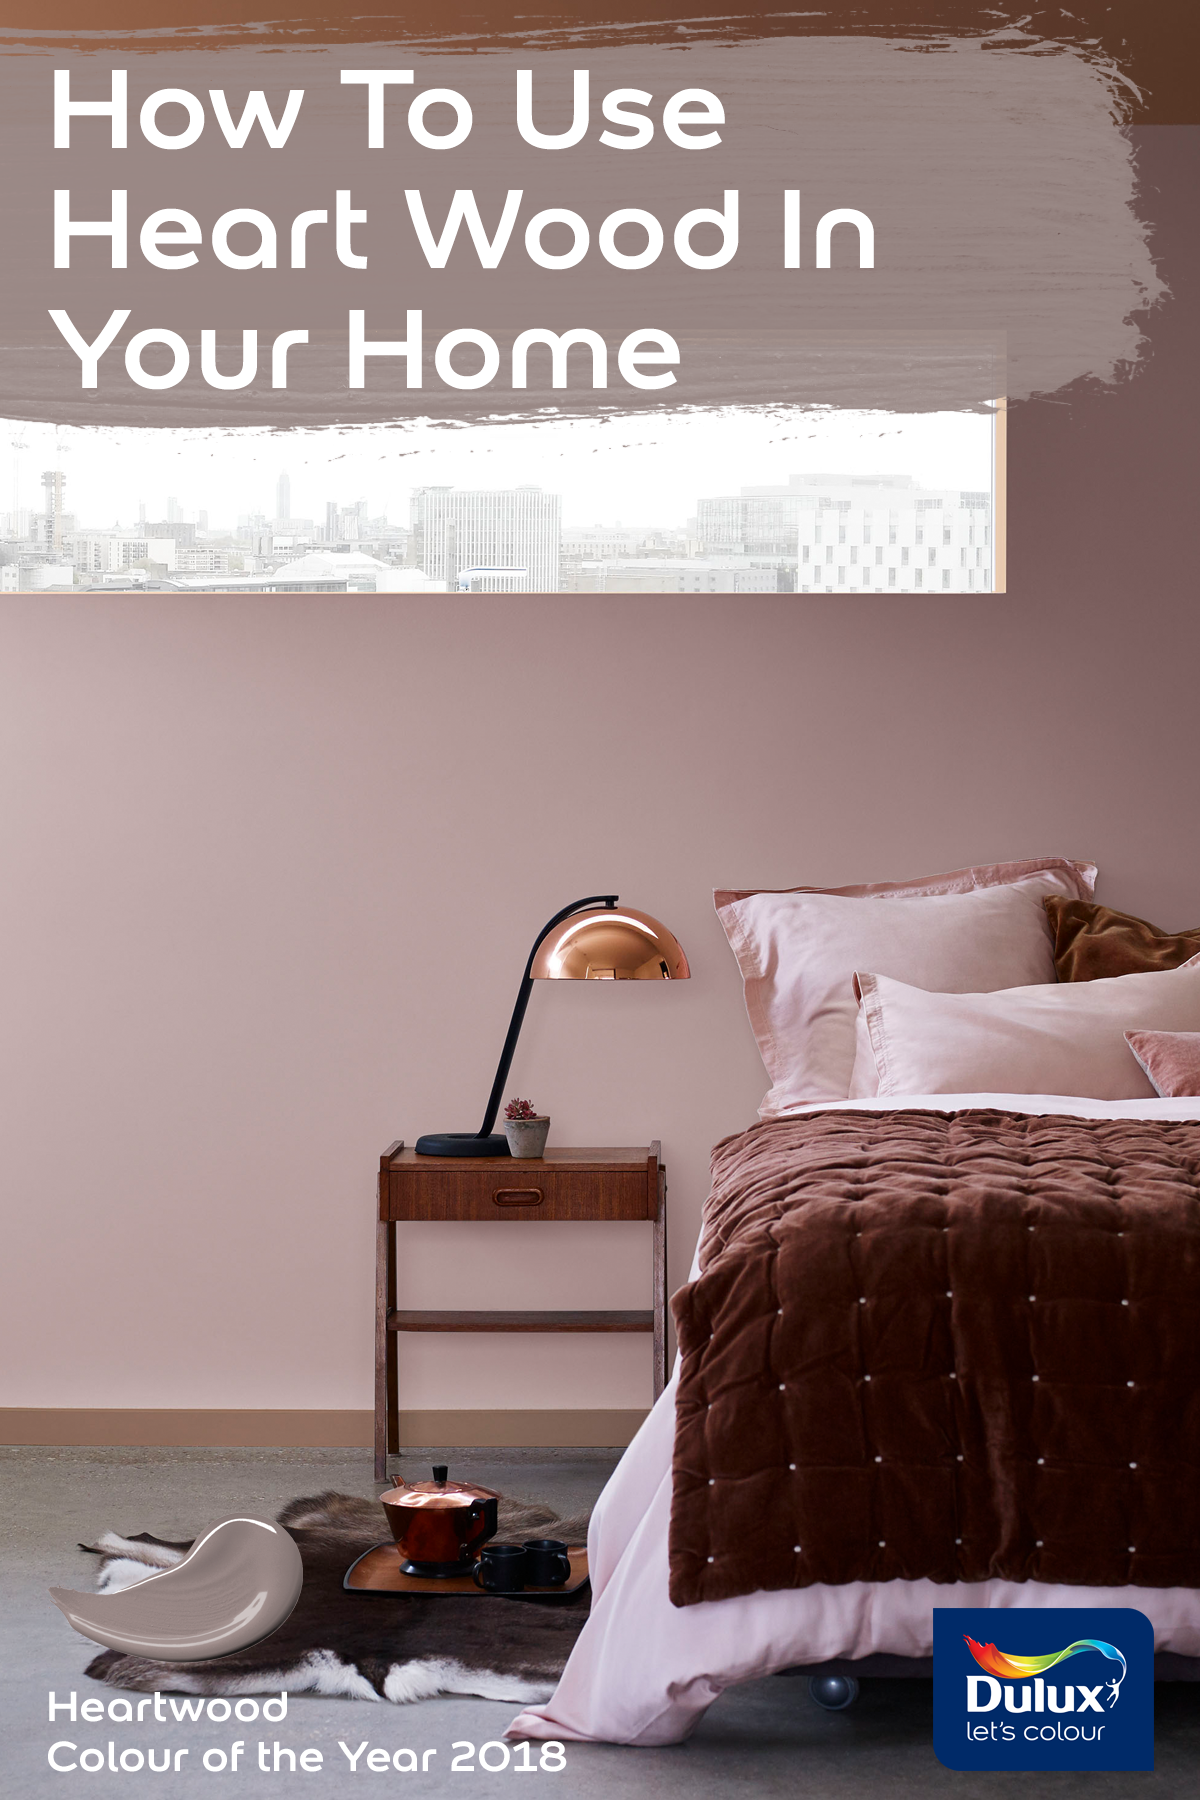 bring the latest trend from dulux into your home with